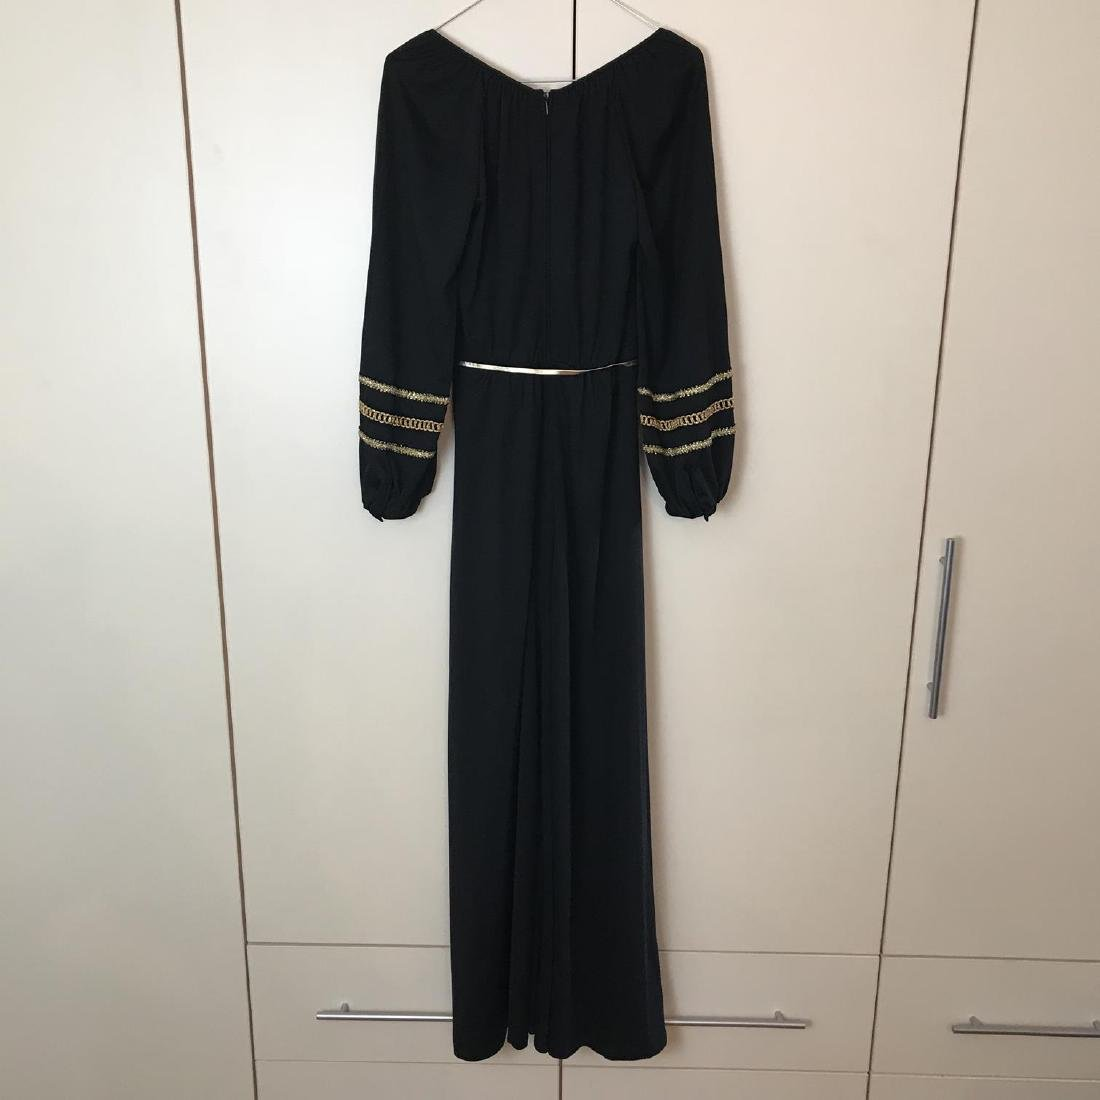 Betty Barclay Black / Gold Vintage Designer Dress - 7